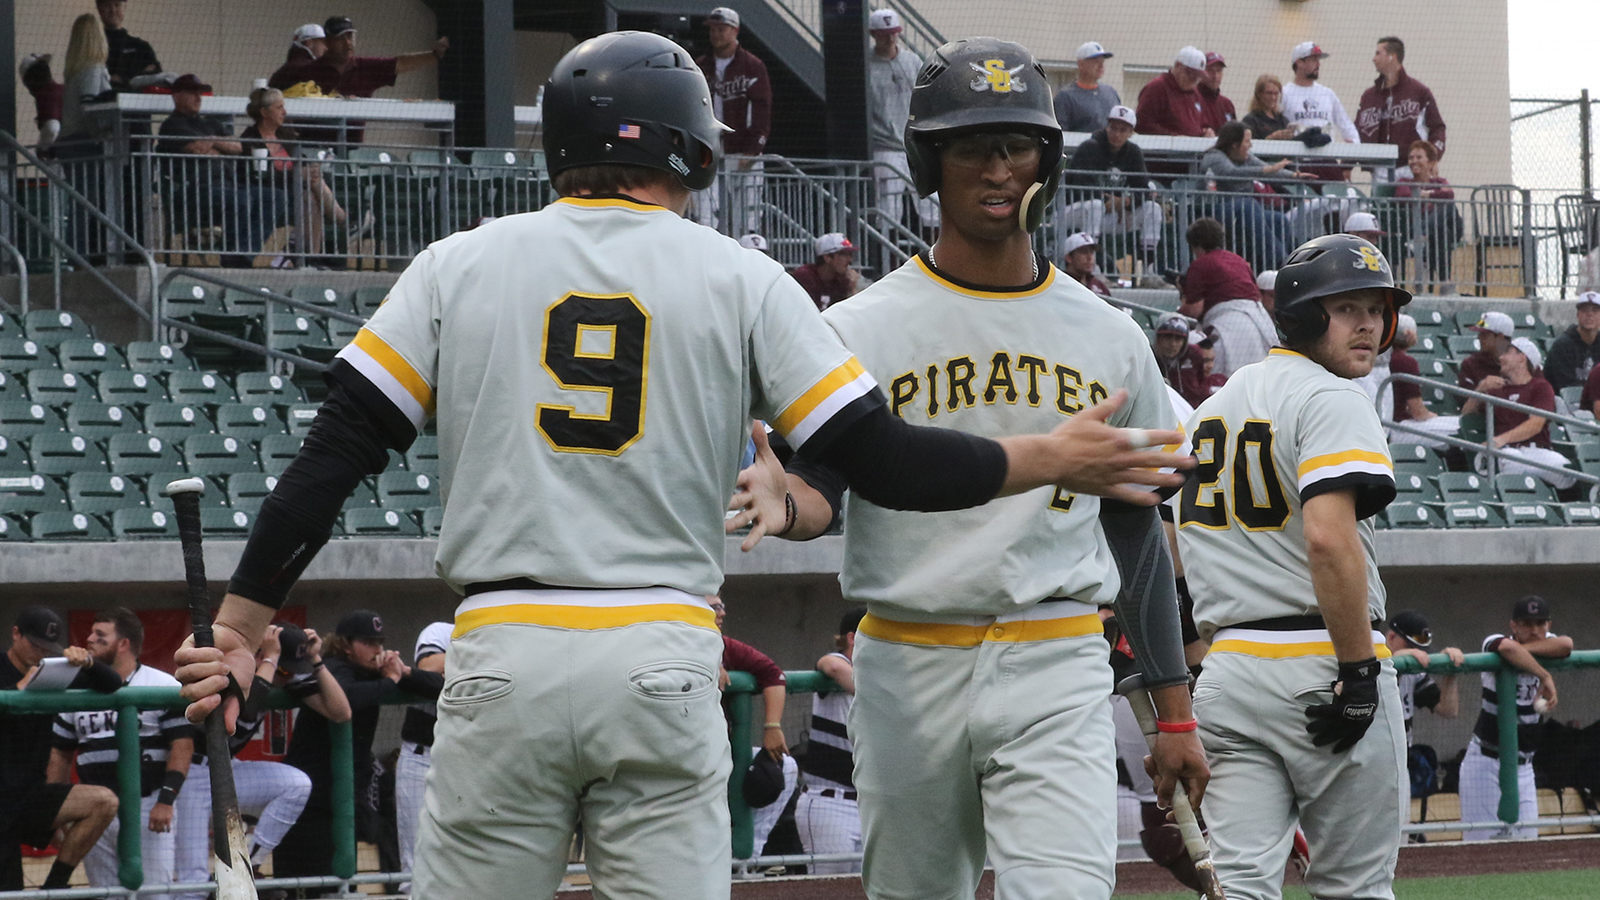 Pirates Knock Off Top-Seeded Centenary in Opening Game of SCAC Championship